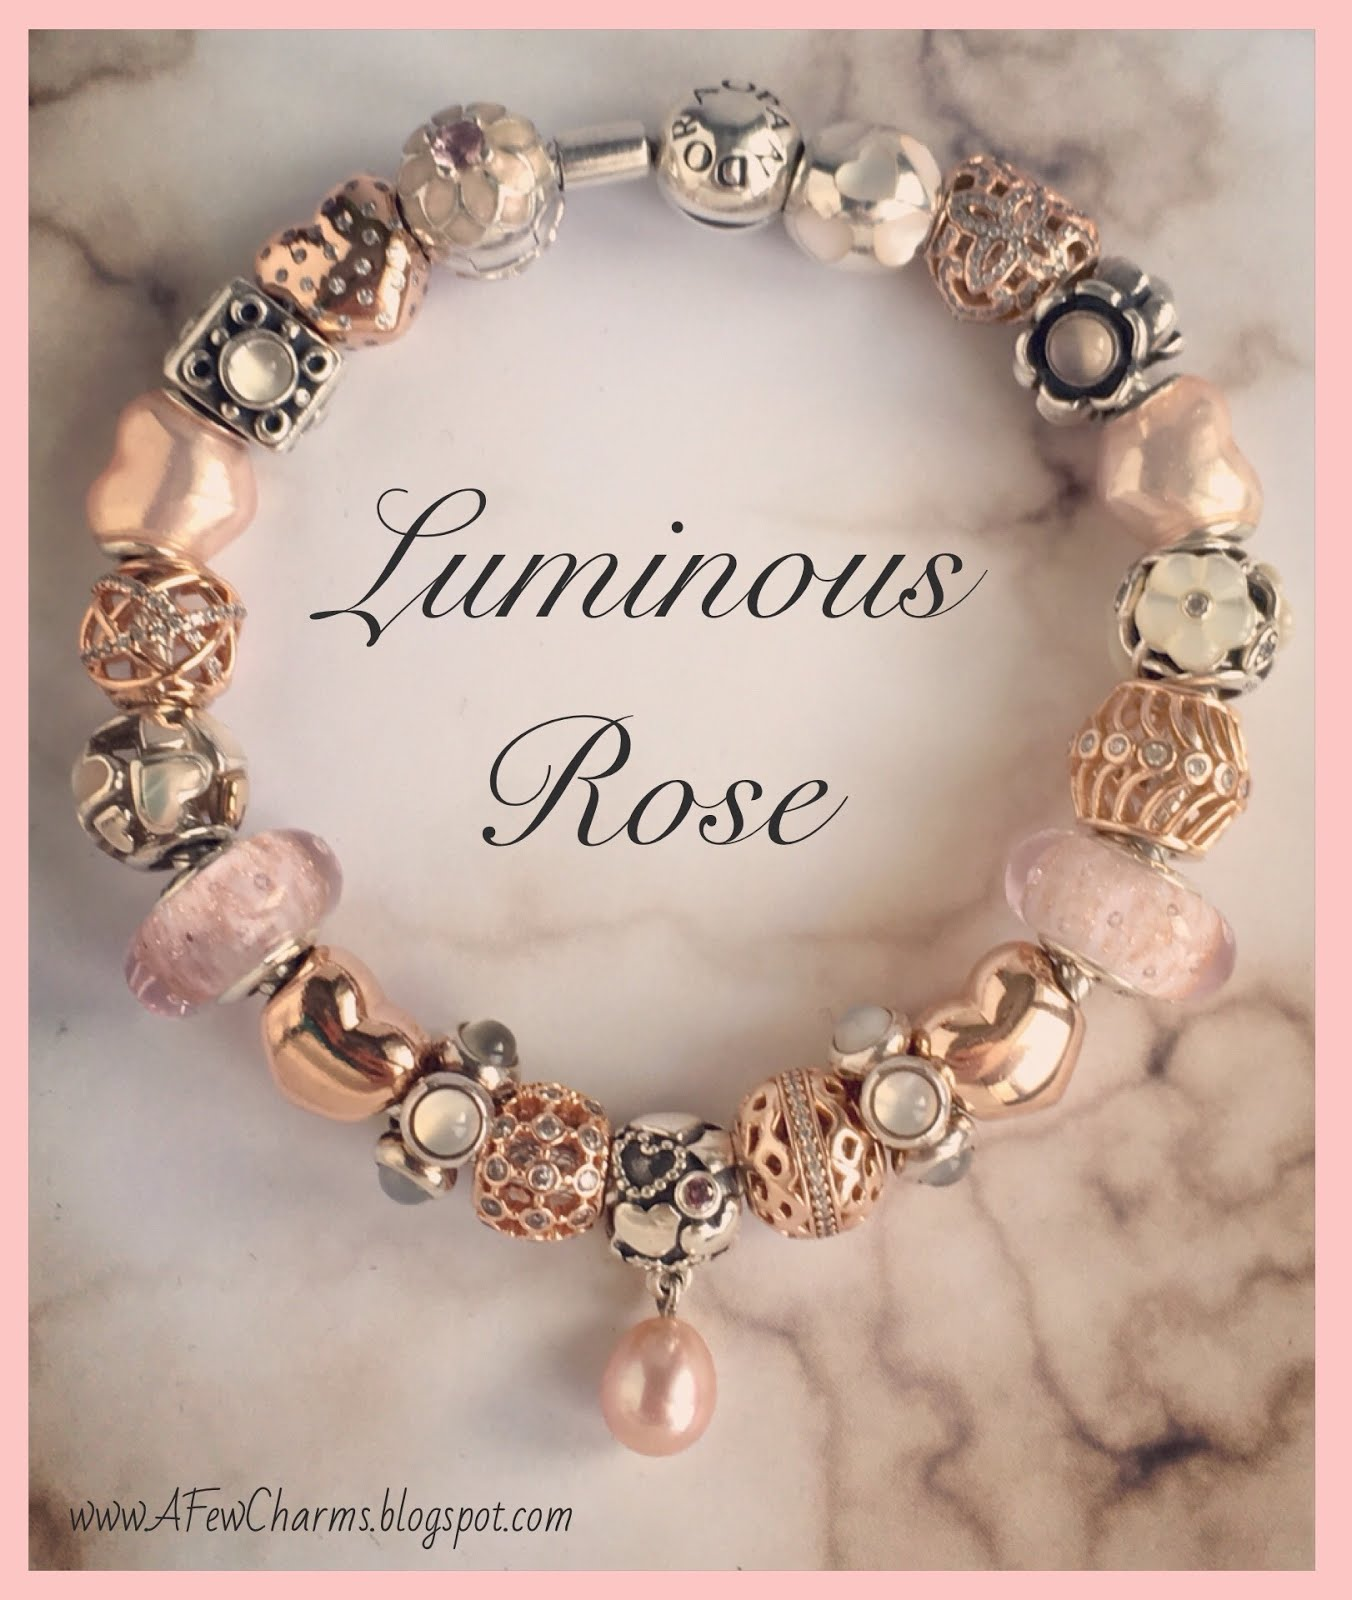 Luminous Rose